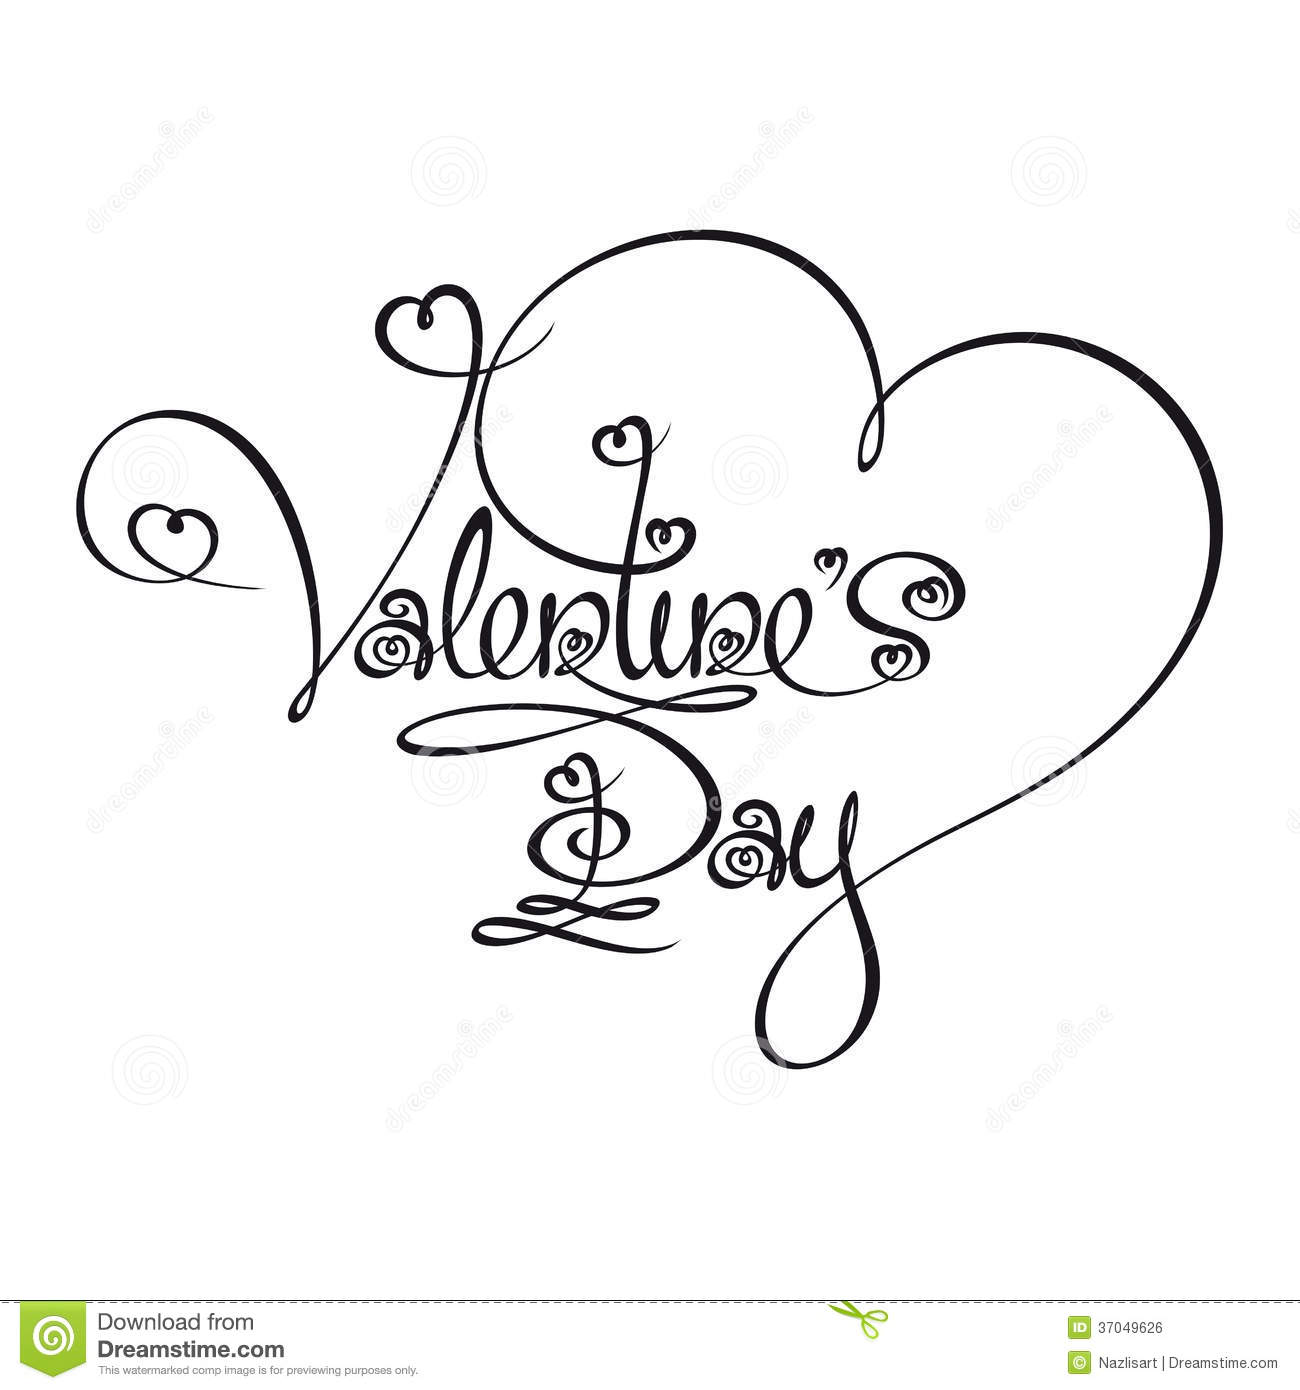 Line Drawing Valentine : Caligraphic text valentines day royalty free stock image